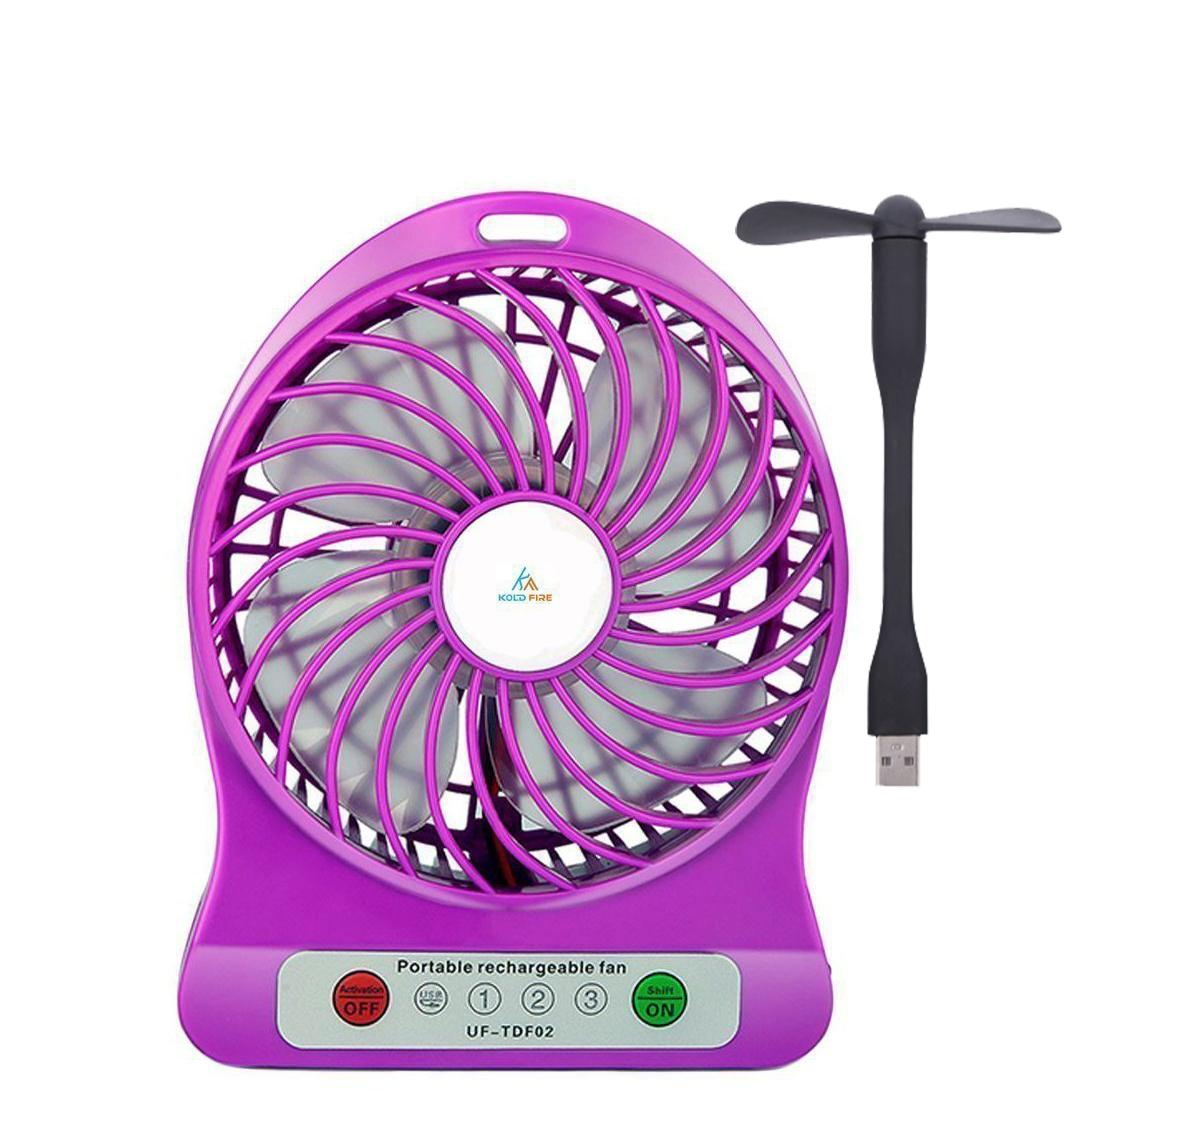 Rechargeable Mini Portable Fan with USB Fan Combo Set - Black